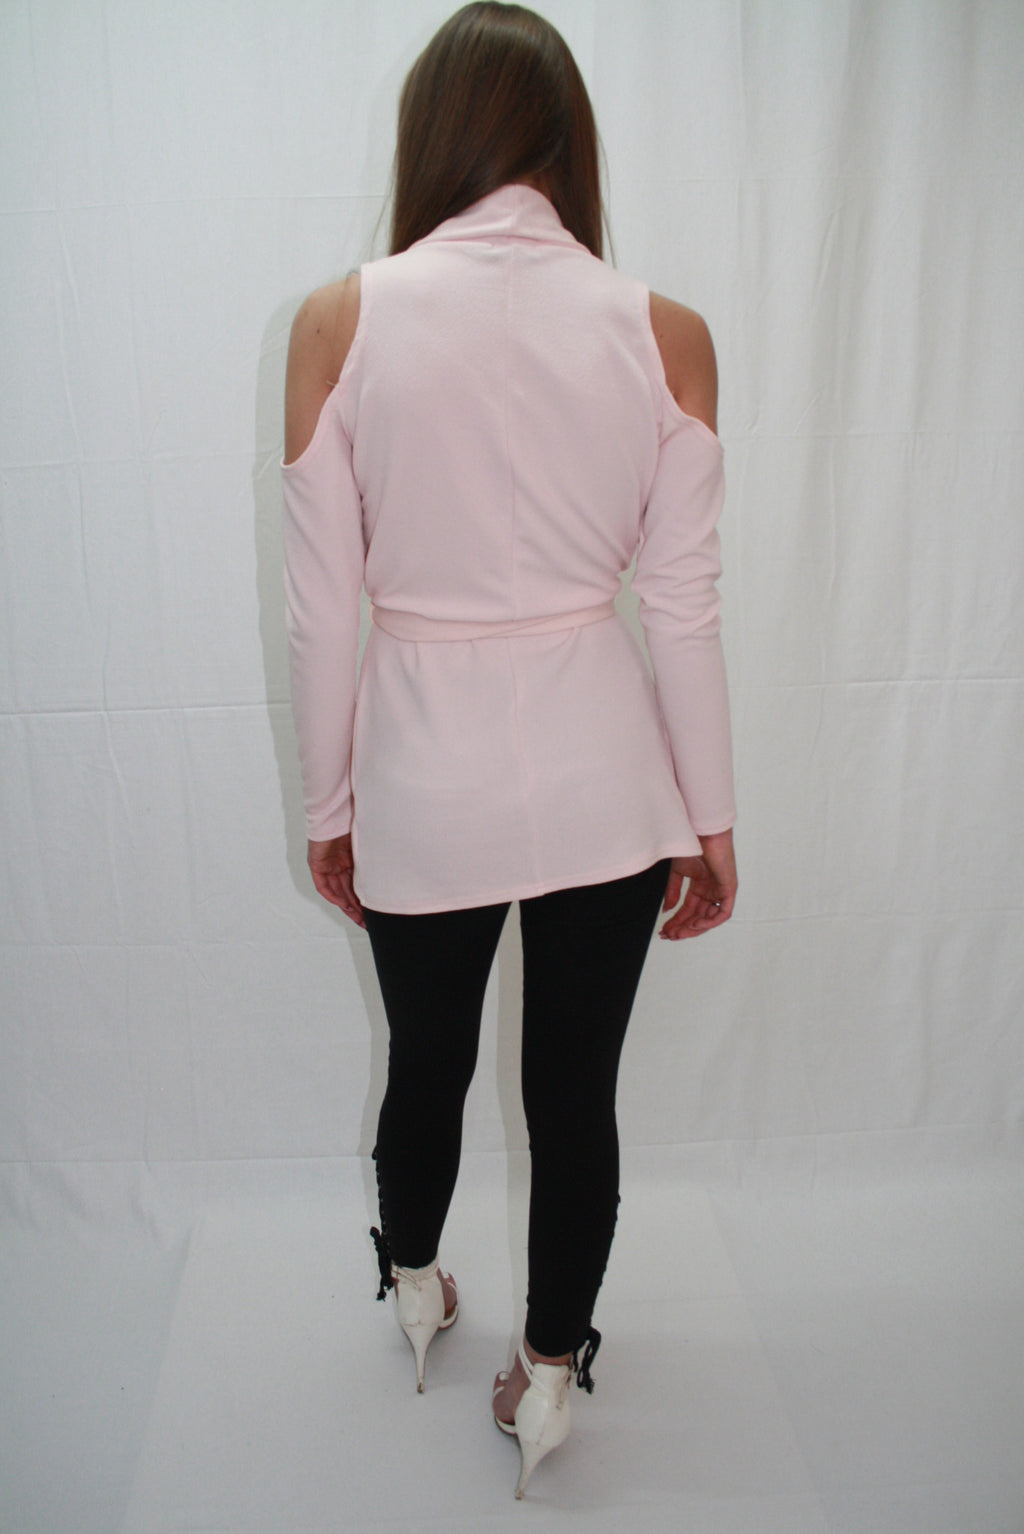 'AMBER' PINK, COLD SHOULDER, TOP